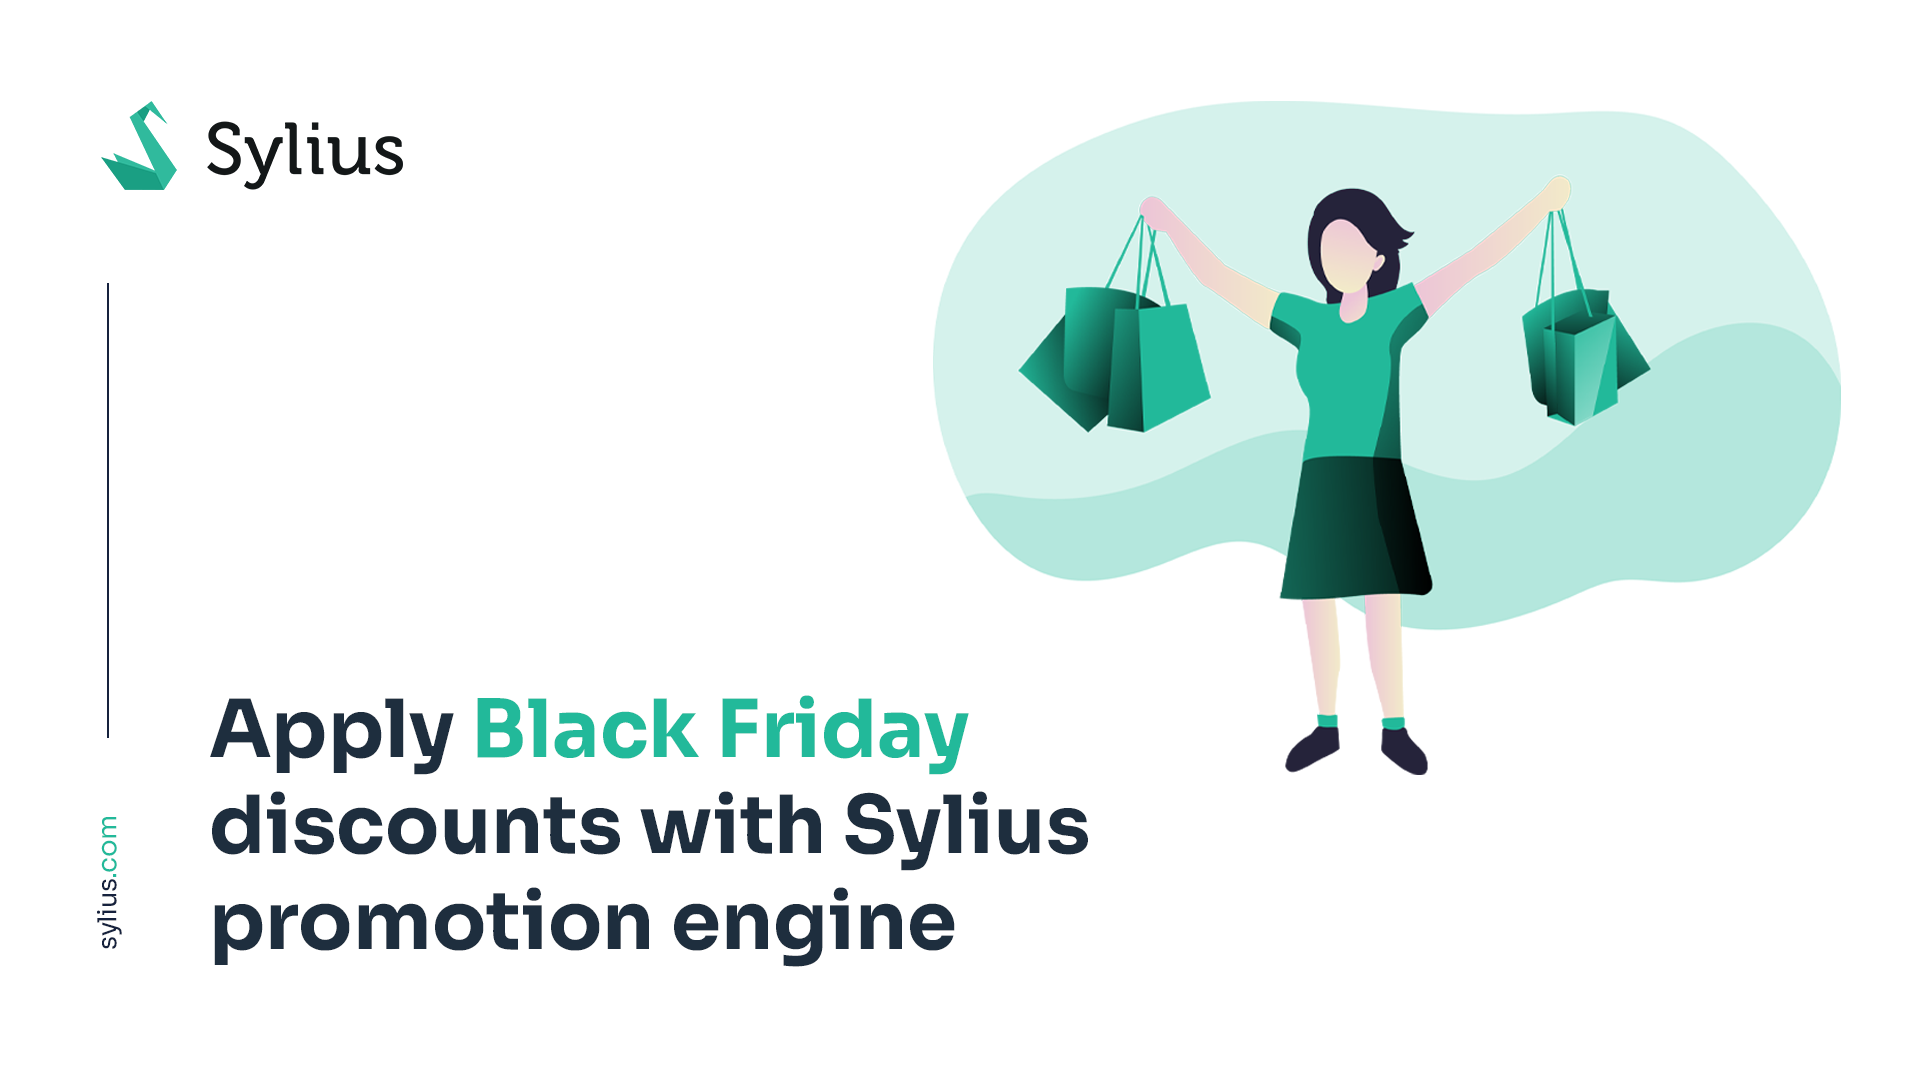 Apply Black Friday discounts with Sylius promotion engine